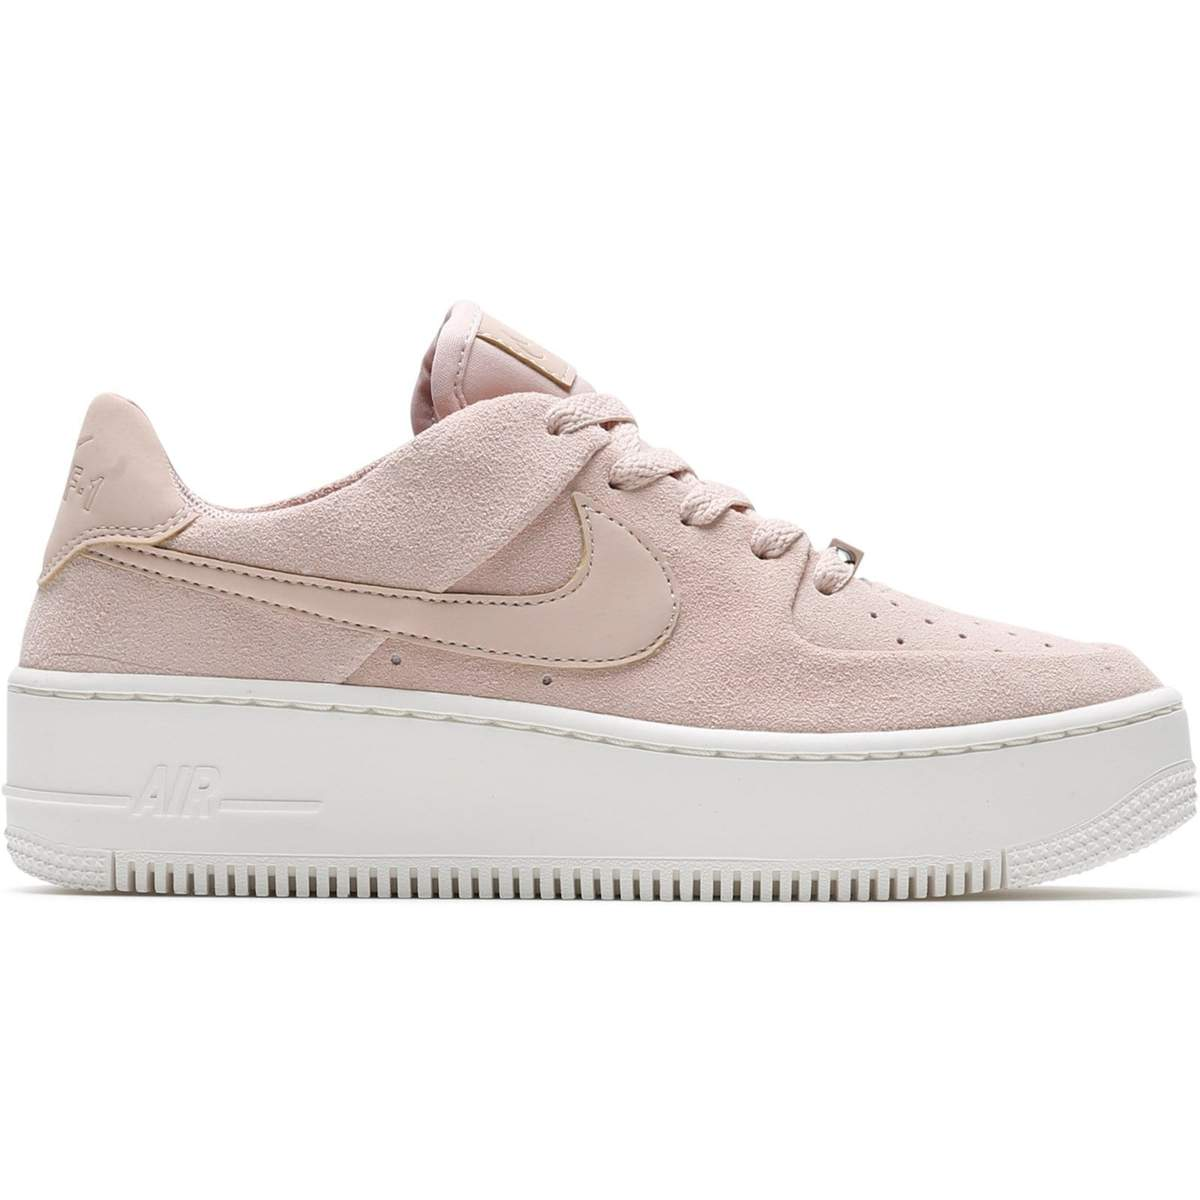 Women's Nike Air Force 1 'Sage' Low